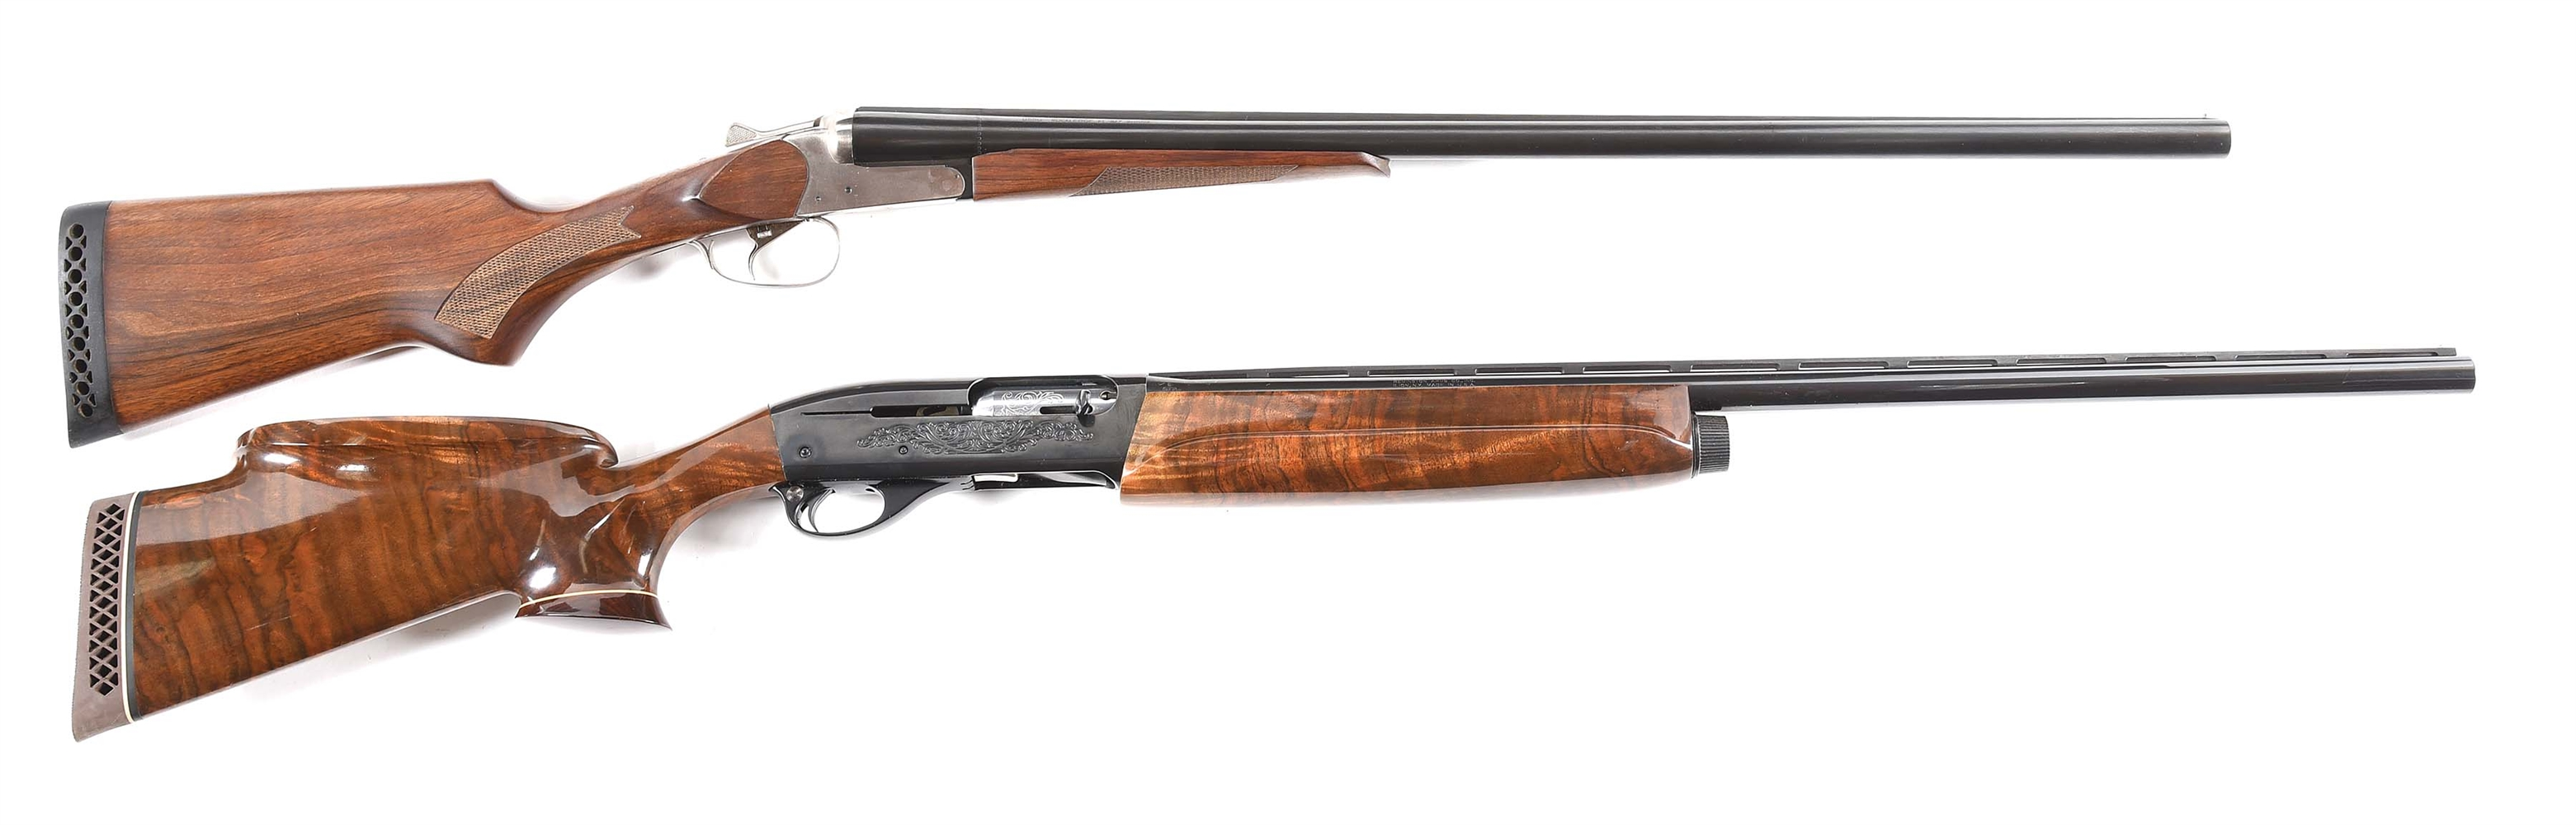 (M) LOT OF TWO: TWO TWELVE GAUGE SHOTGUNS, ONE BAIKAL AND ONE REMINGTON.